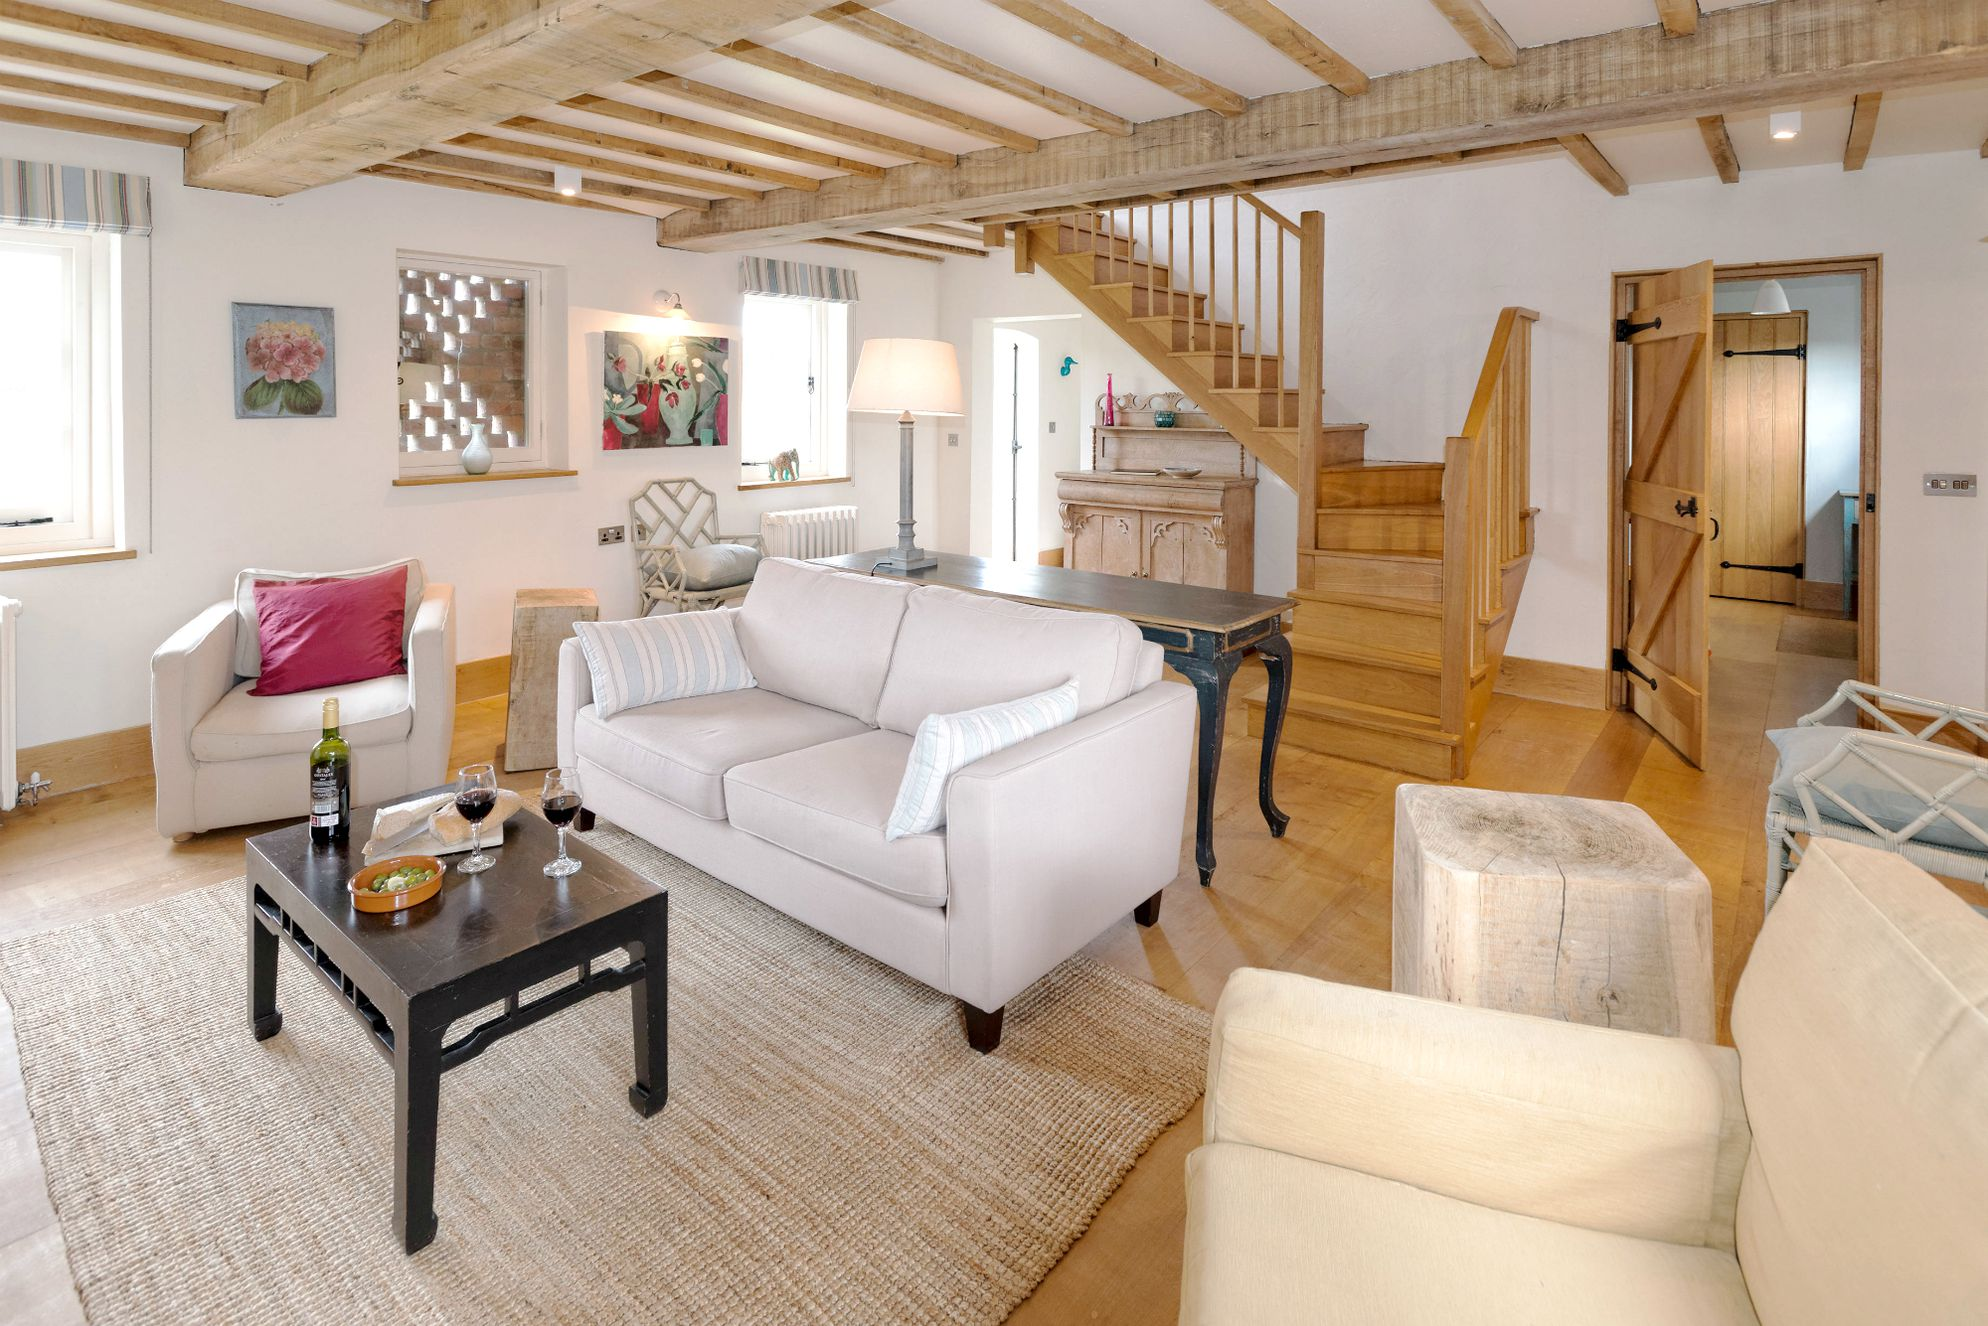 Light and spacious living area with exposed beams and neutral furniture at Field House, Collfryn Farm in Powys, Wales